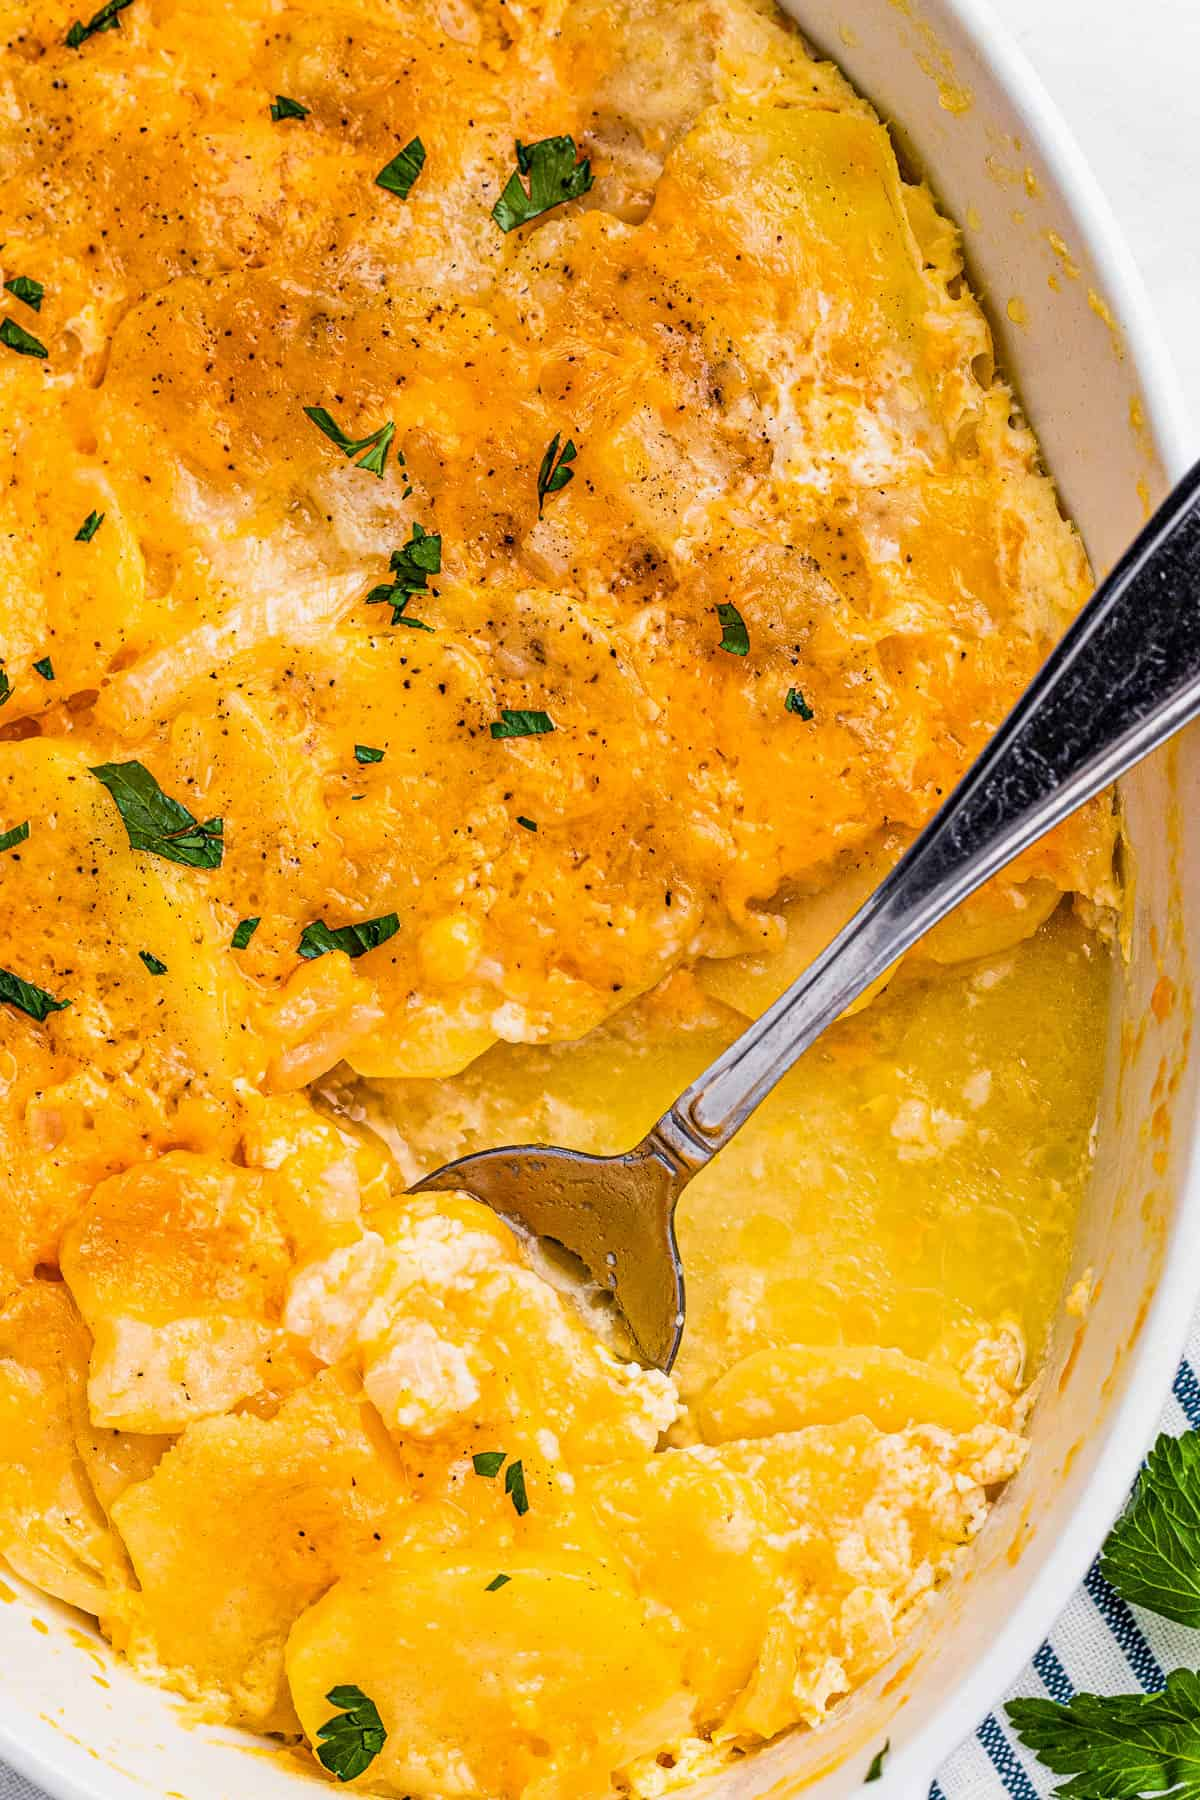 scalloped potatoes in a white casserole dish with a spoon inside the dish